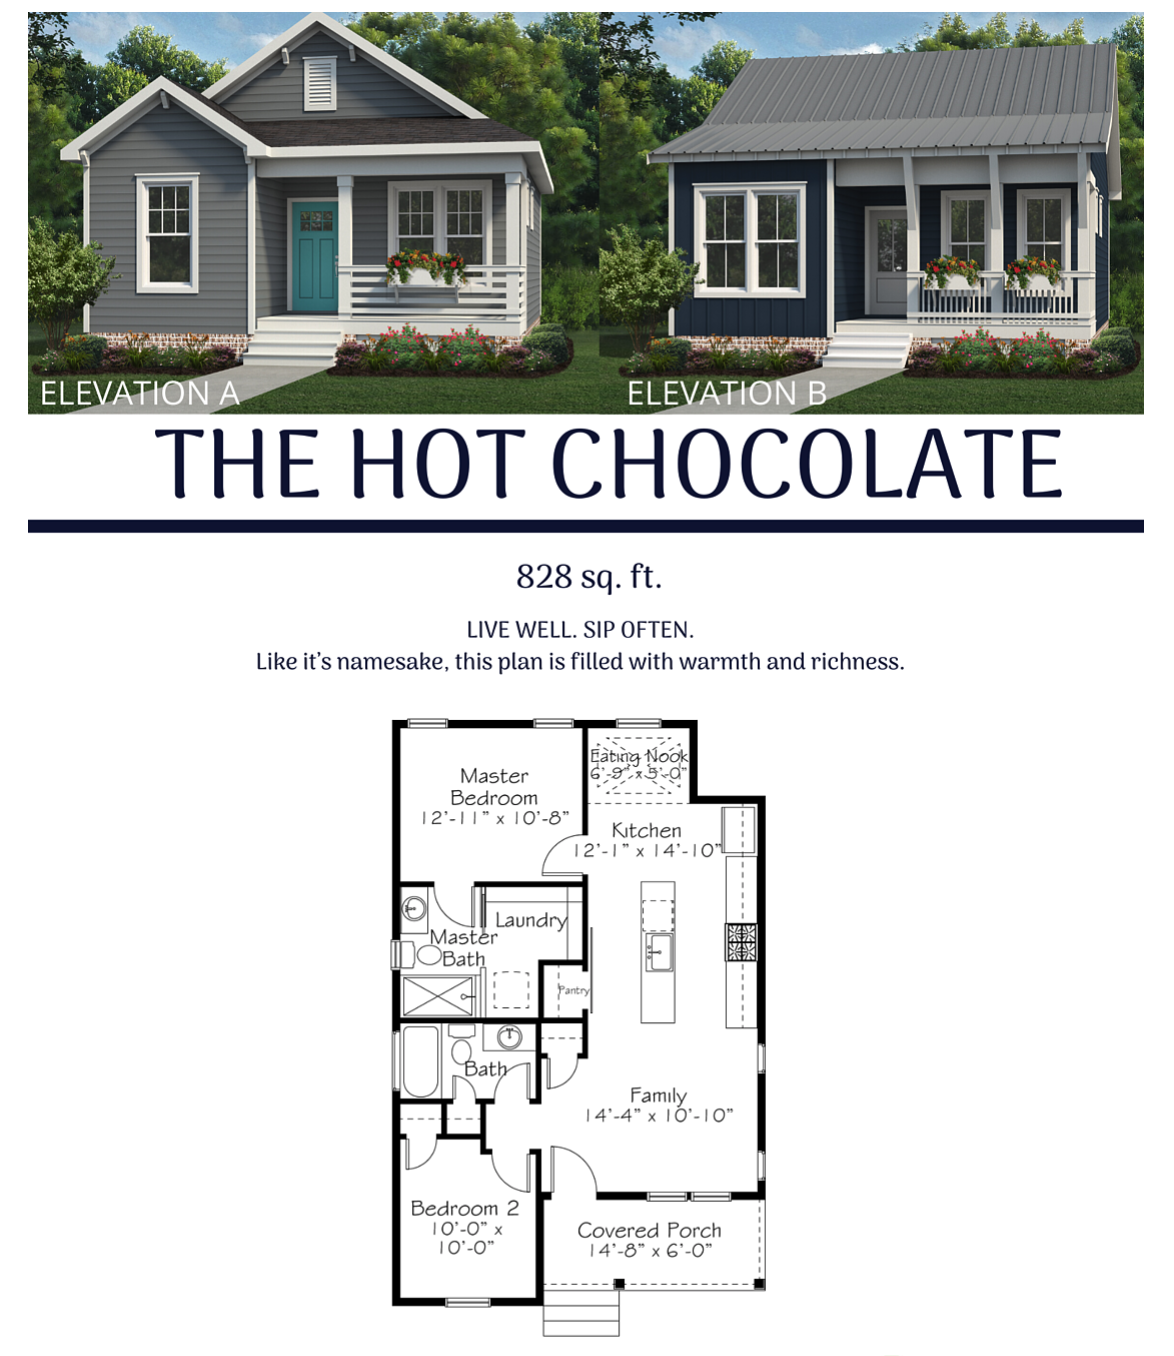 Hot Chocolate - Chatham Park - Triangle Real Estate Journal